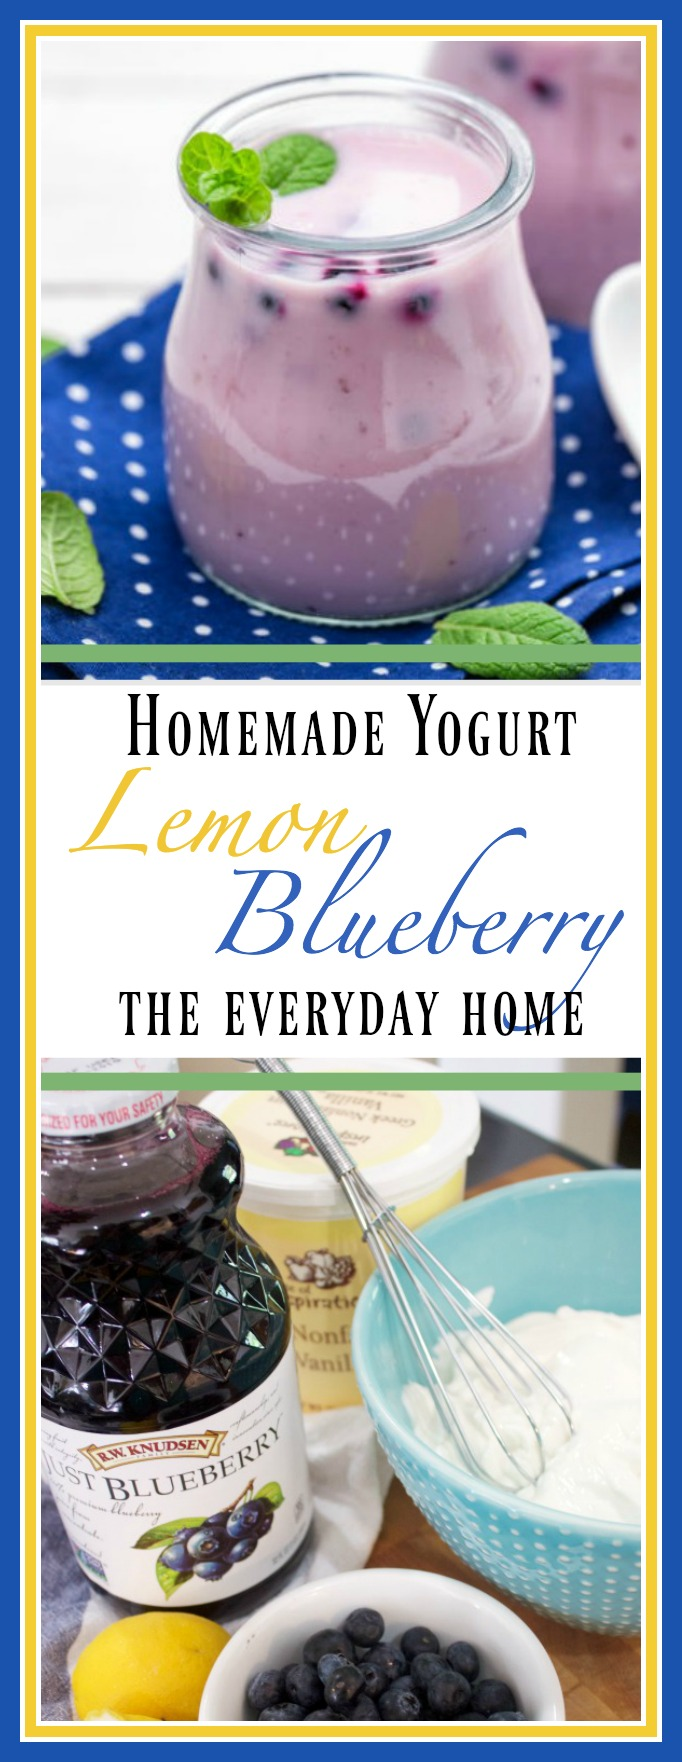 Easy Blueberry Lemon Yogurt || The Everyday Home || www.everydayhomeblog.com